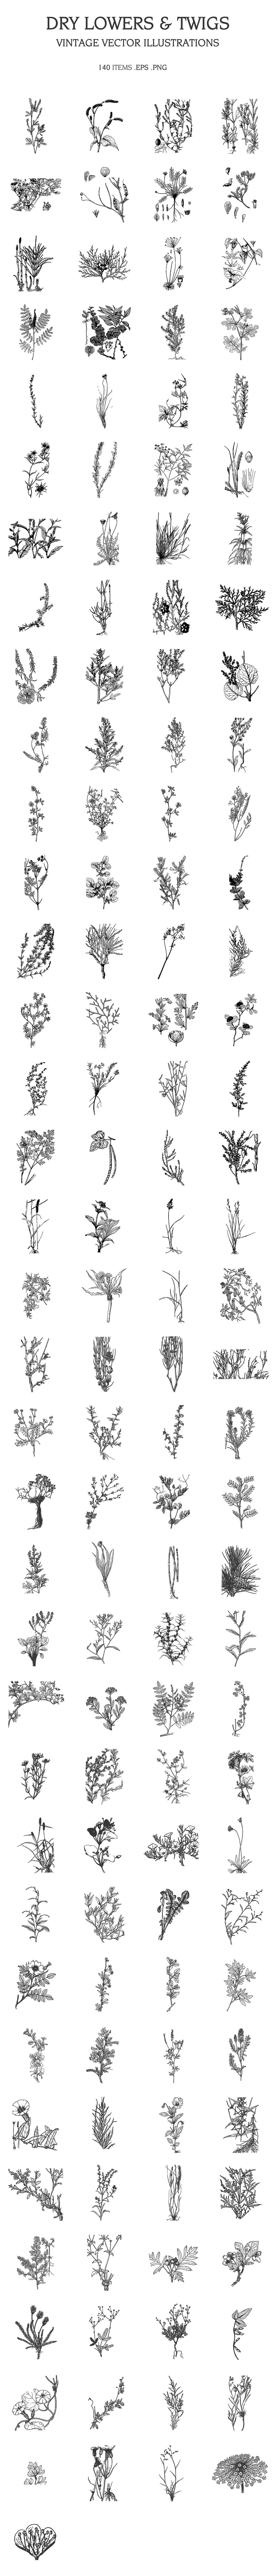 These are dried flowers. They last for a long time, and in this illustration there is a large collection of them.